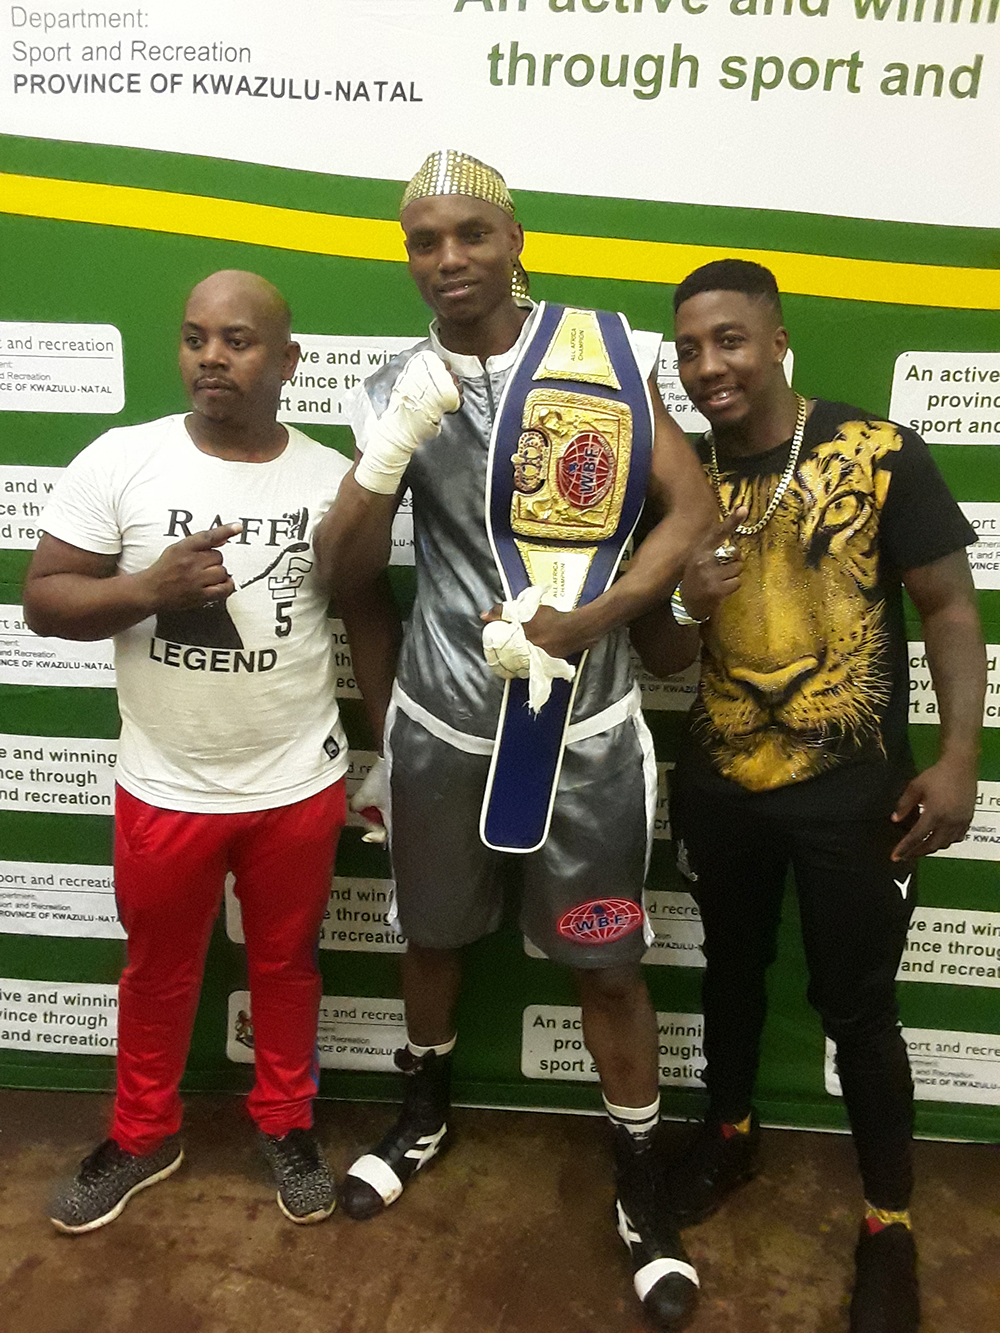 sa-boxers-shine-in-inter-continental-boxing-at-nongoma-2019.jpg